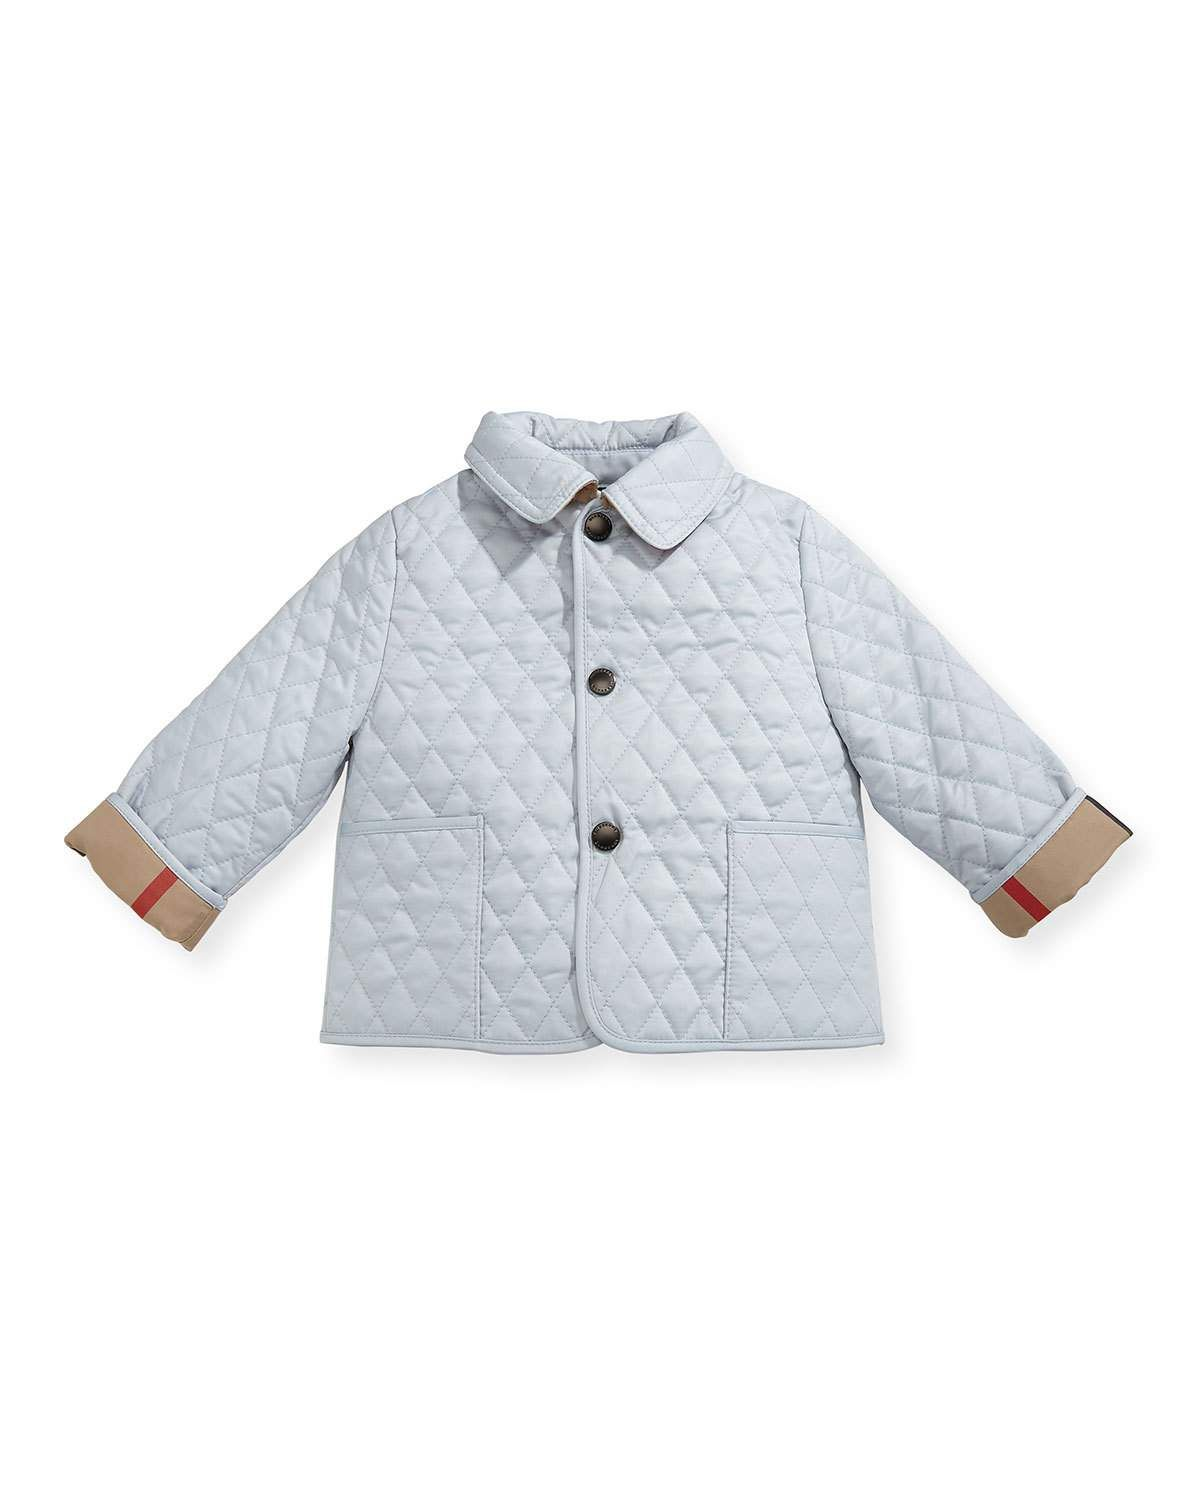 Burberry Colin Quilted Collared Jacket Light Blue Size 3 24 Months Jackets Clothes Baby Pants